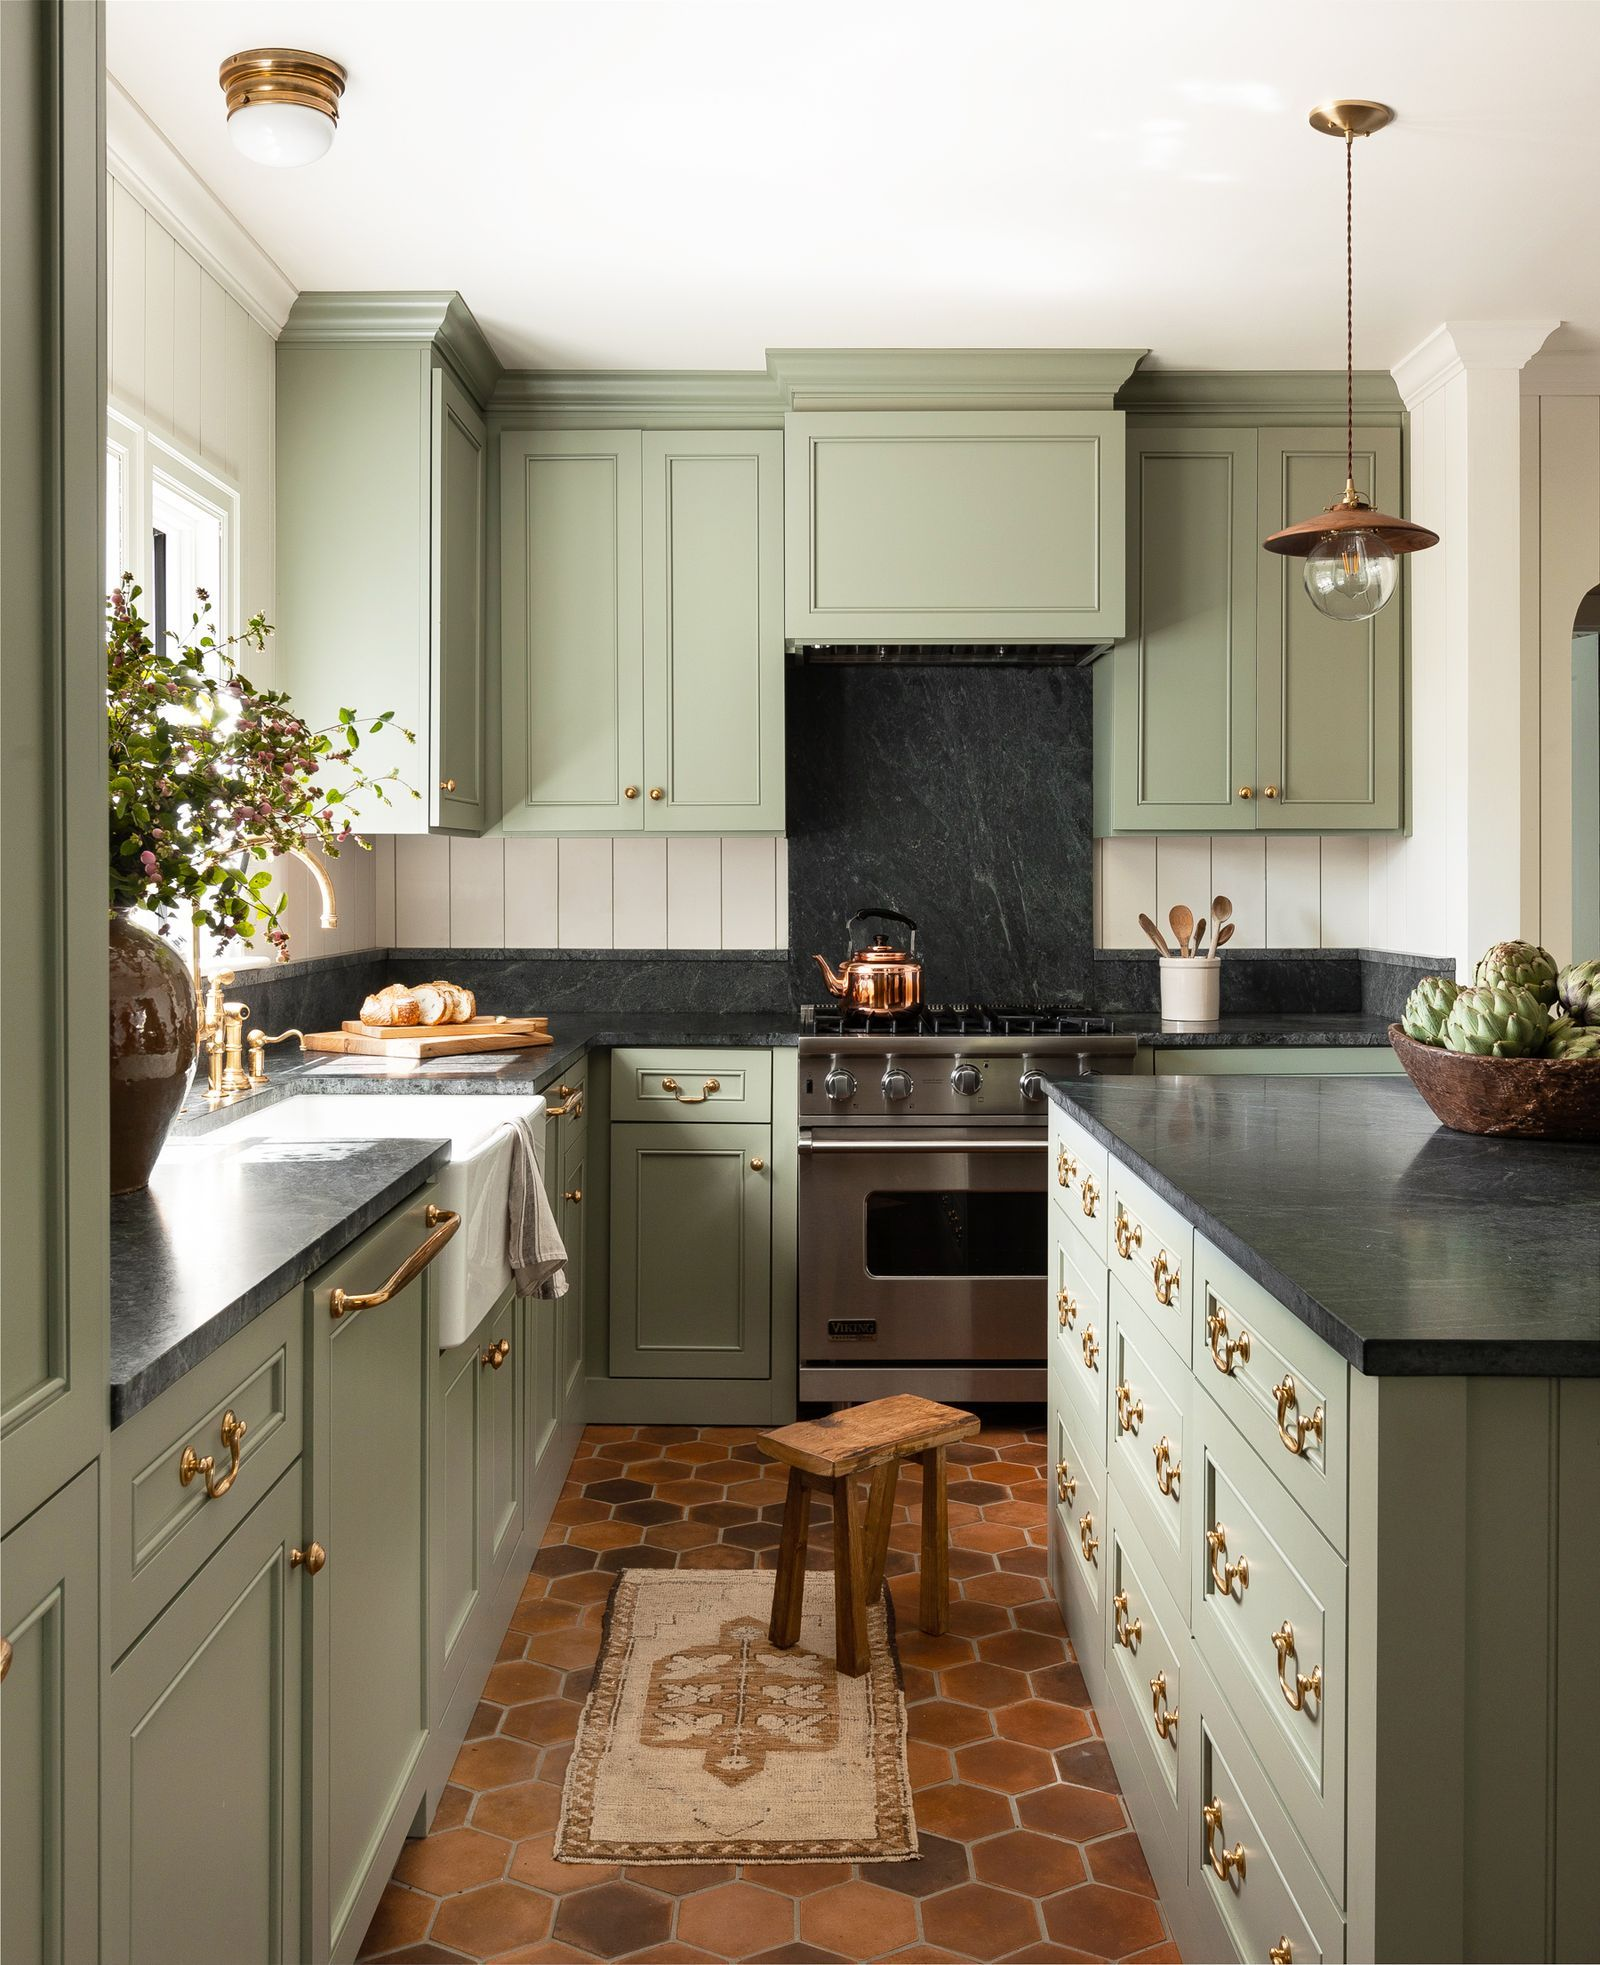 11 Green Kitchen Cabinet Paint Colors We Swear By Green Kitchen Cabinets Painted Kitchen Cabinets Colors Teal Kitchen